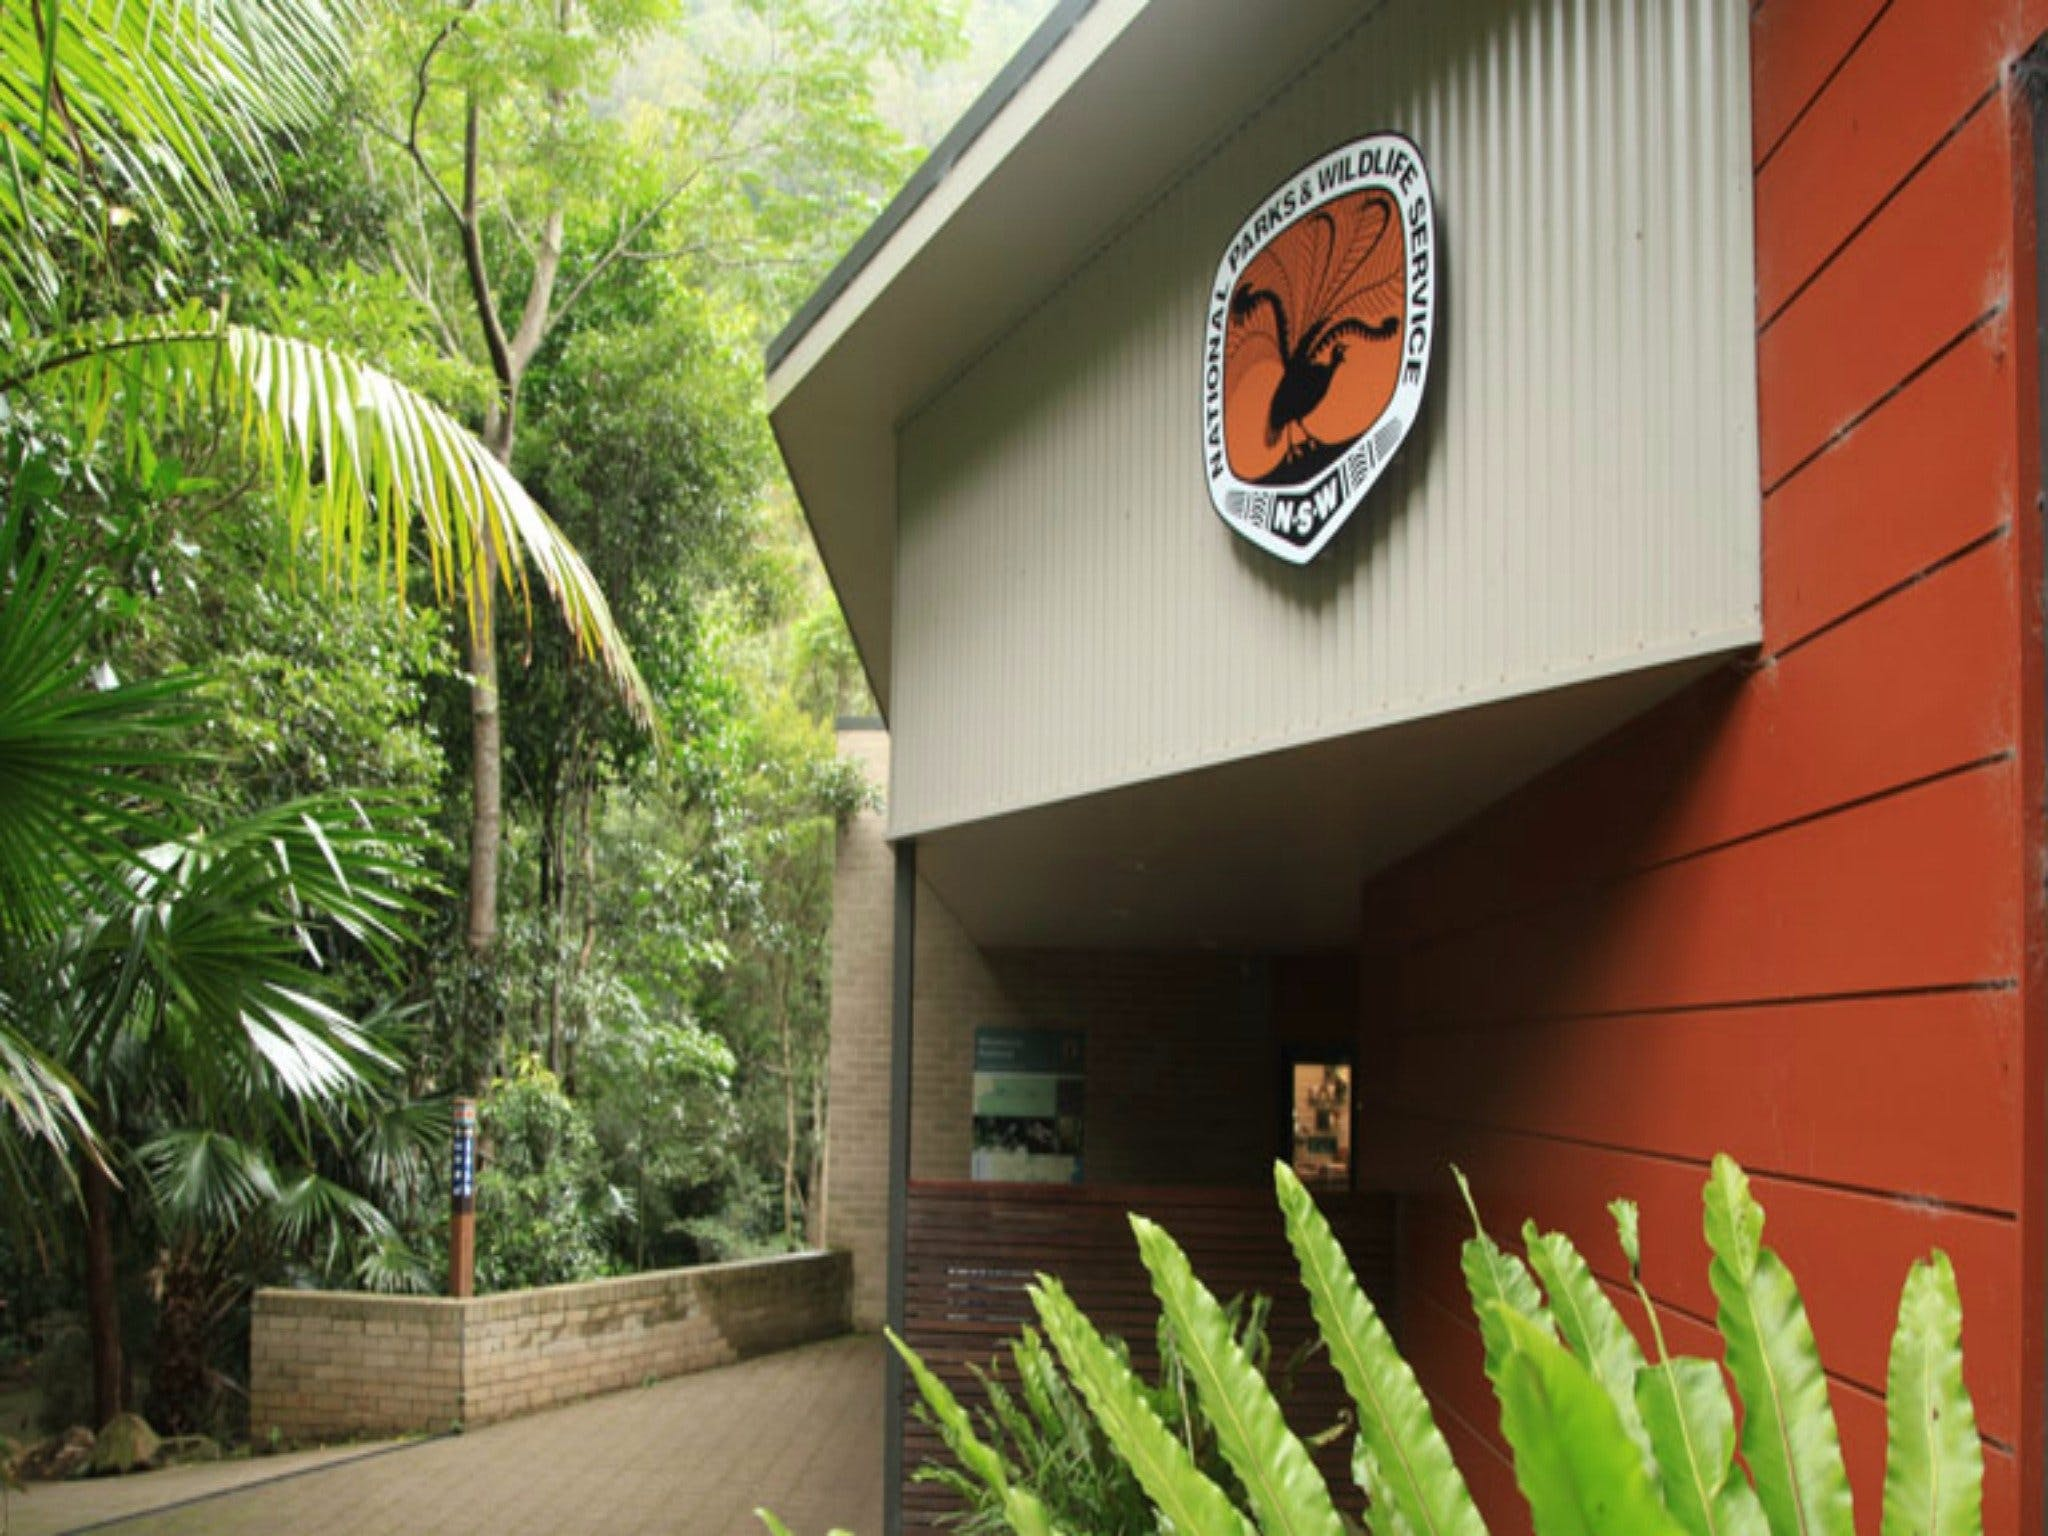 Minnamurra Rainforest Centre Budderoo National Park - Wagga Wagga Accommodation